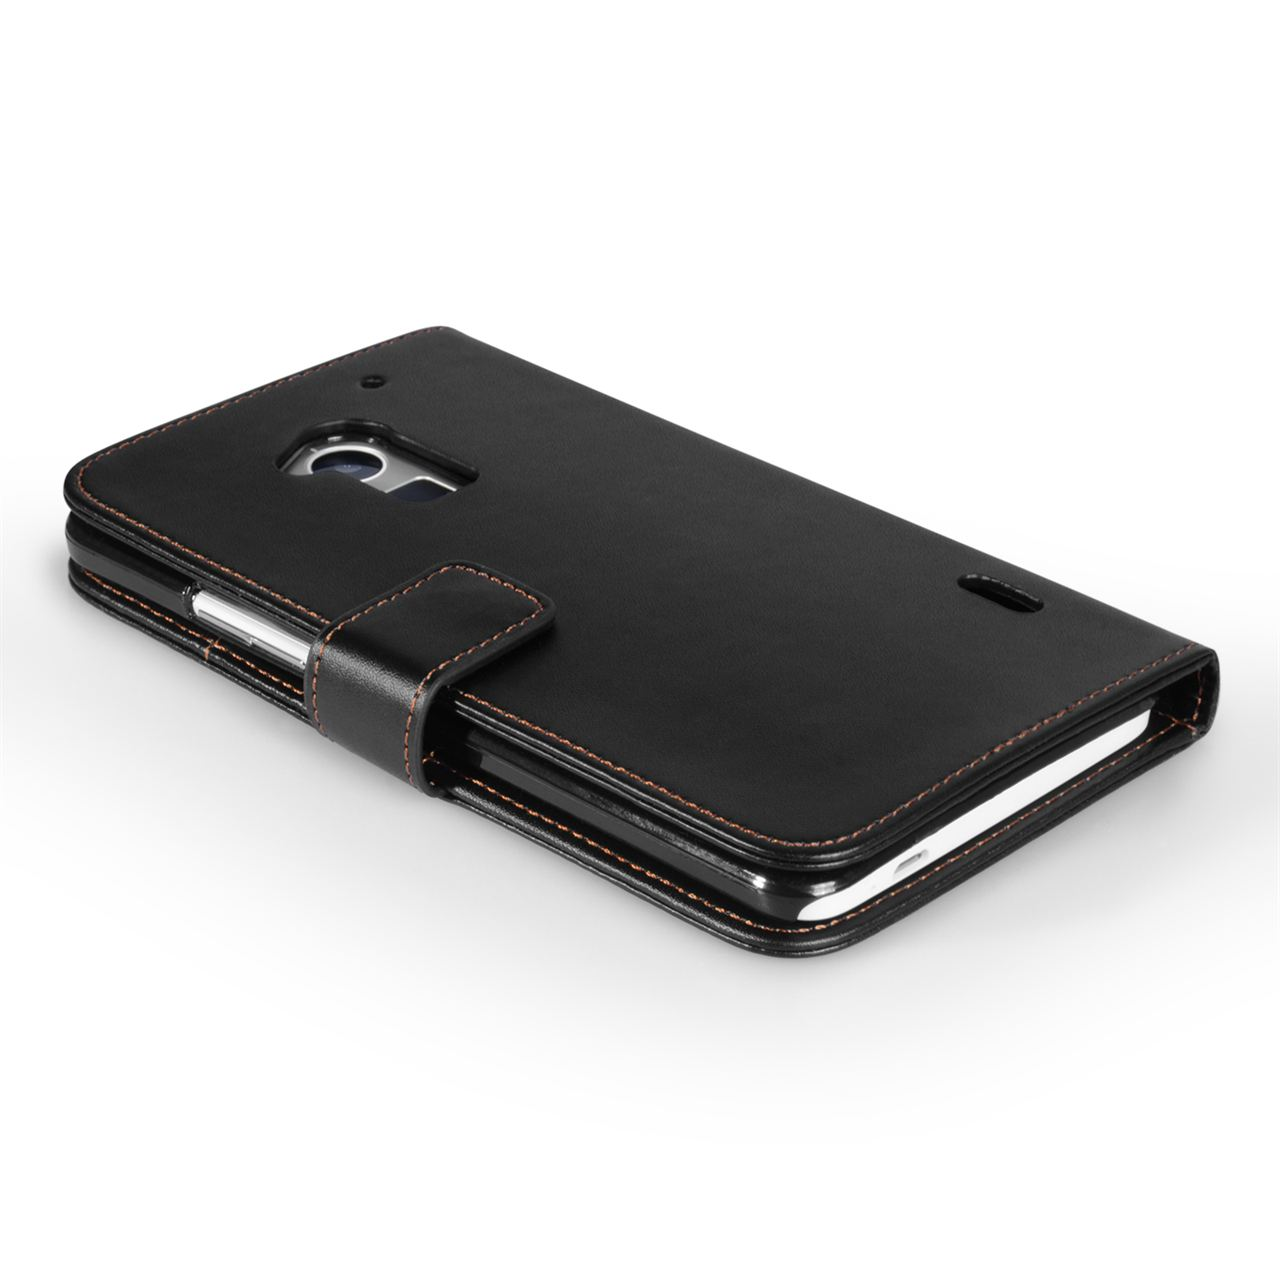 YouSave Accessories HTC One Max Leather Effect Wallet Case - Black